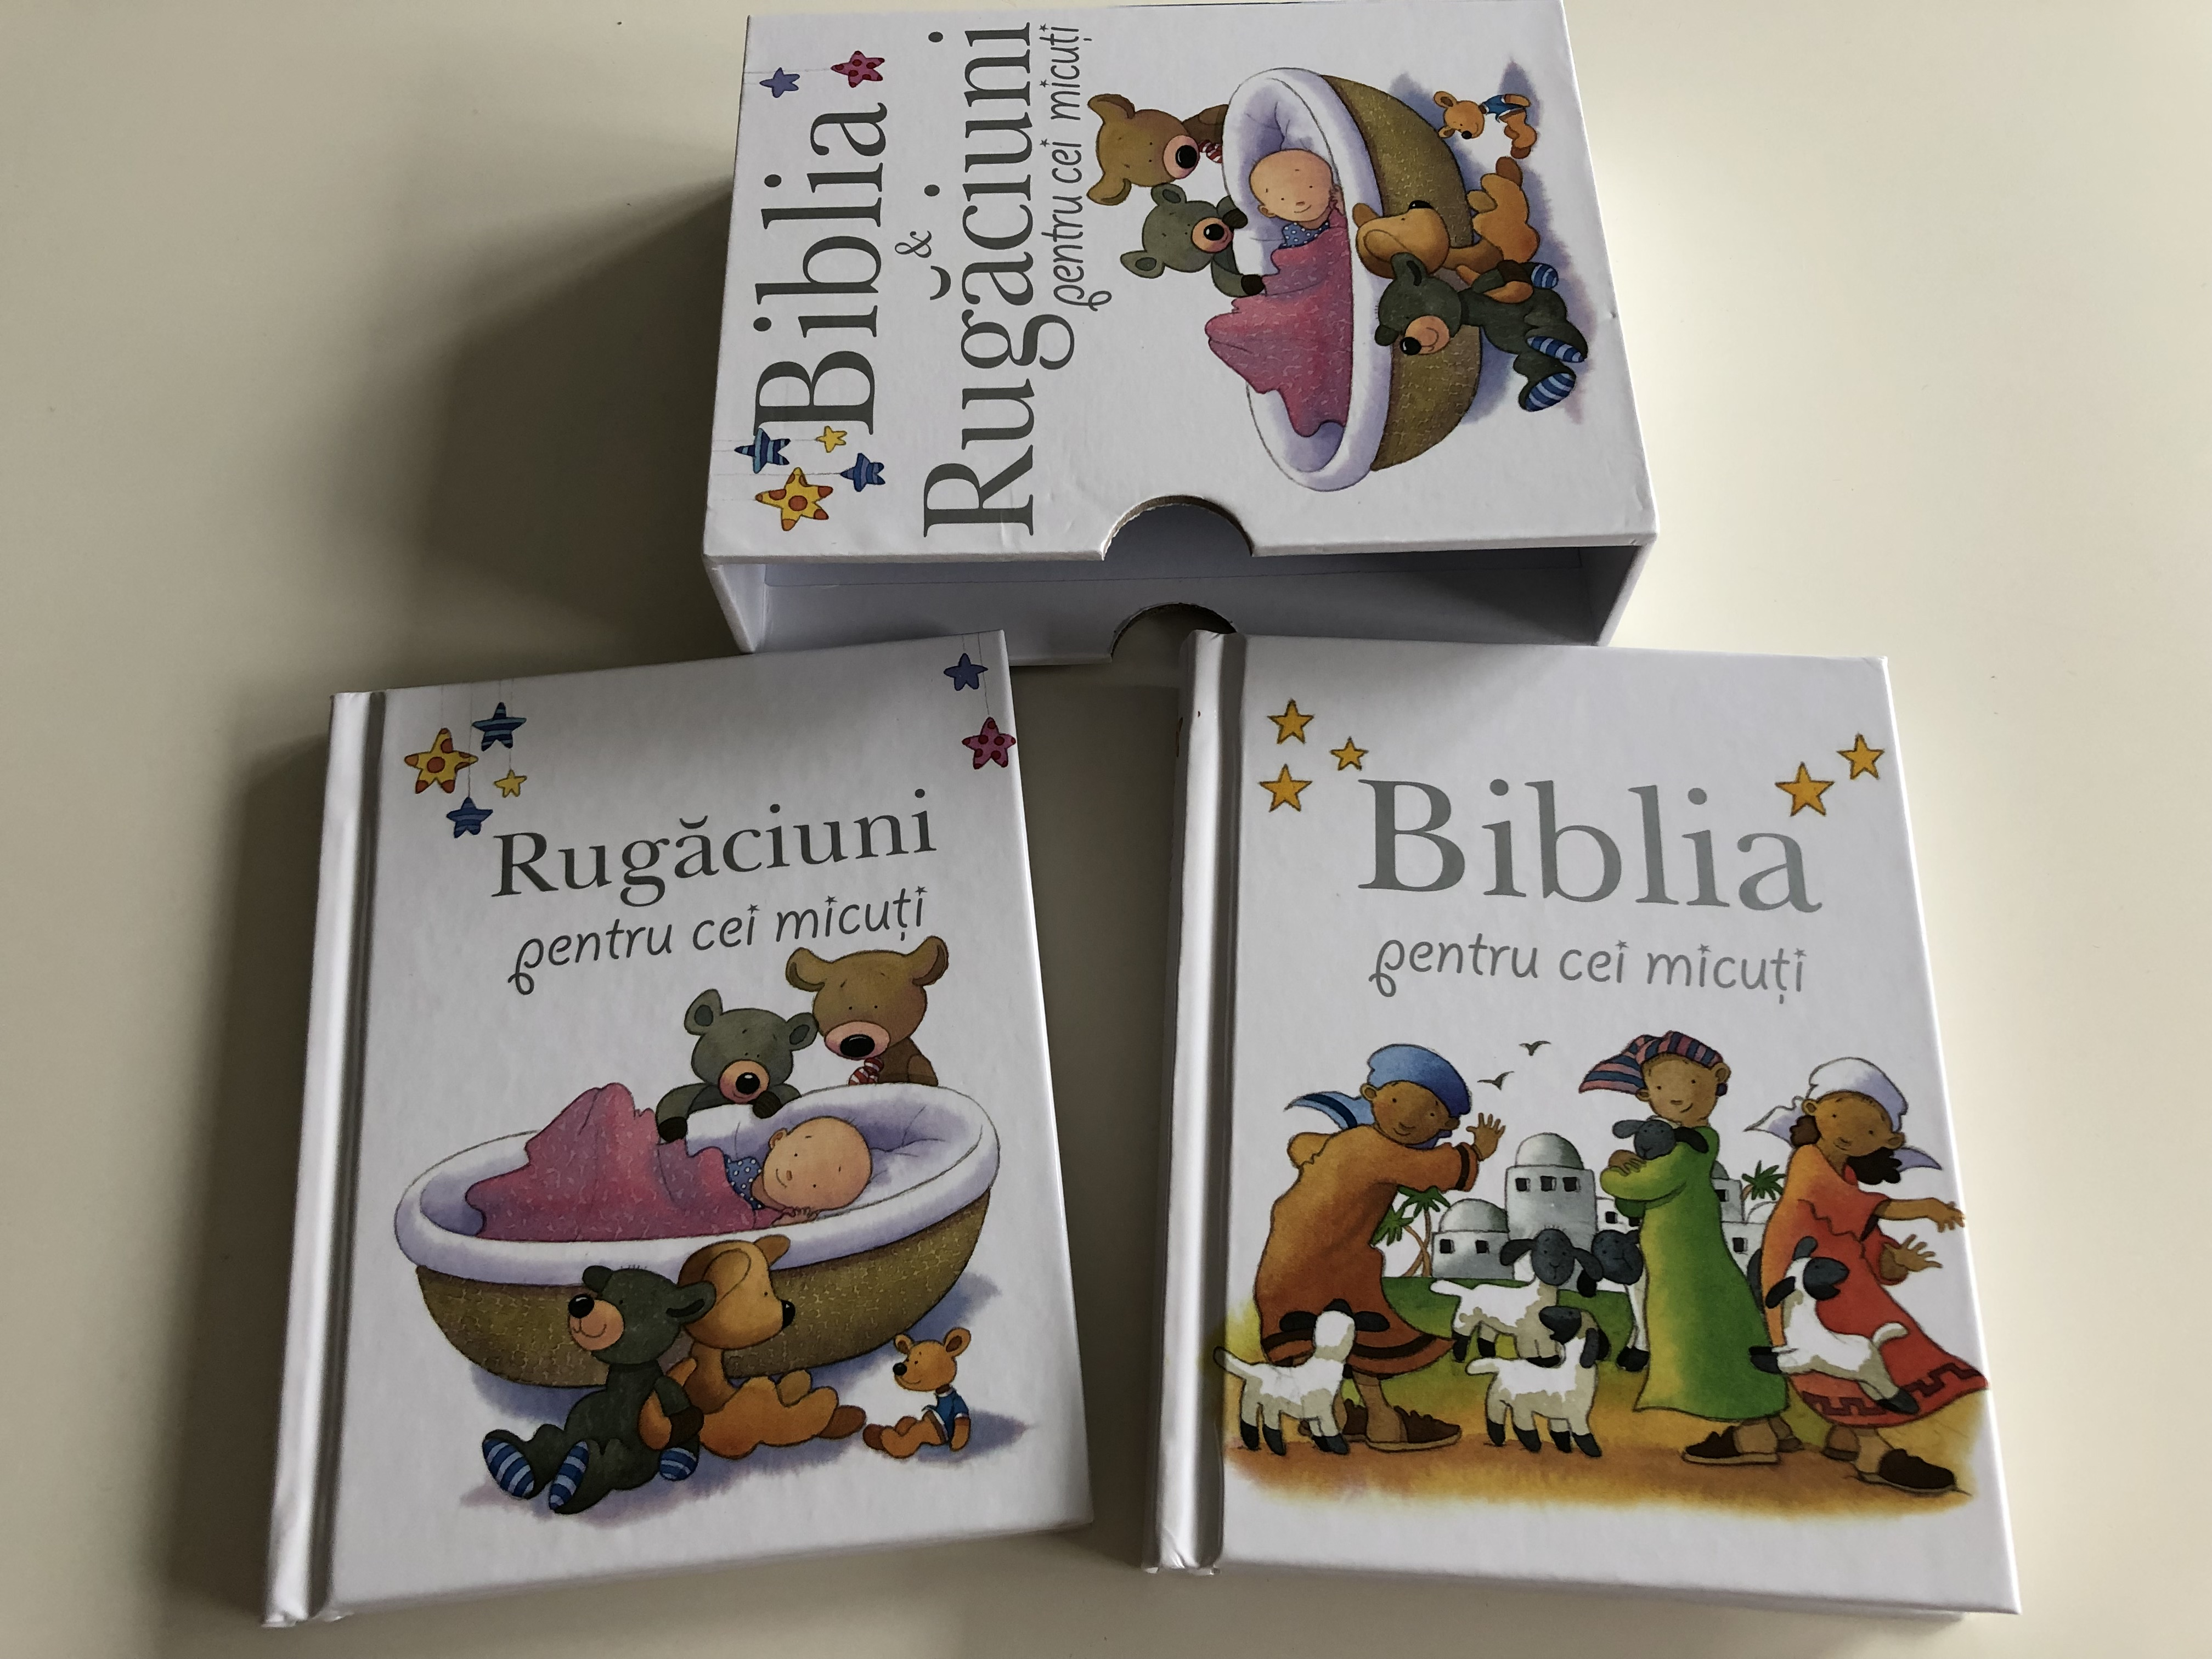 biblia-rug-ciuni-pentru-cei-micuti-by-sarag-toulmin-romanian-translation-of-baby-bible-and-baby-prayers-lion-hudson-comes-in-a-protective-box-baby-bible-for-children-between-1-3-years-illustrations-by-kristina-step-4915234-.jpg